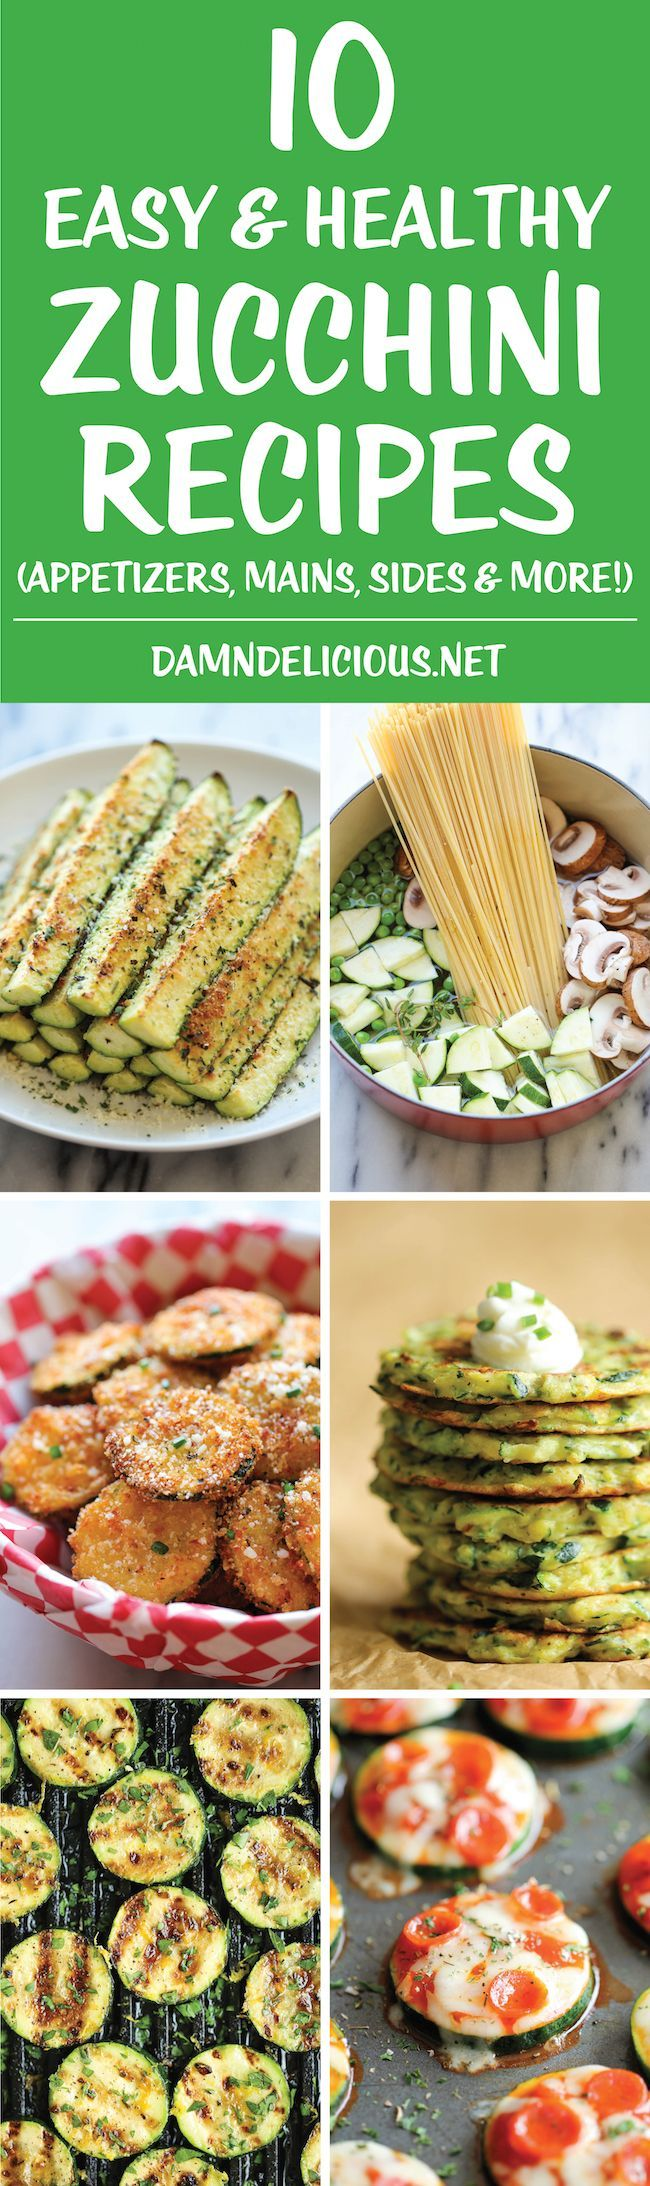 10 Easy and Healthy Zucchini Recipes